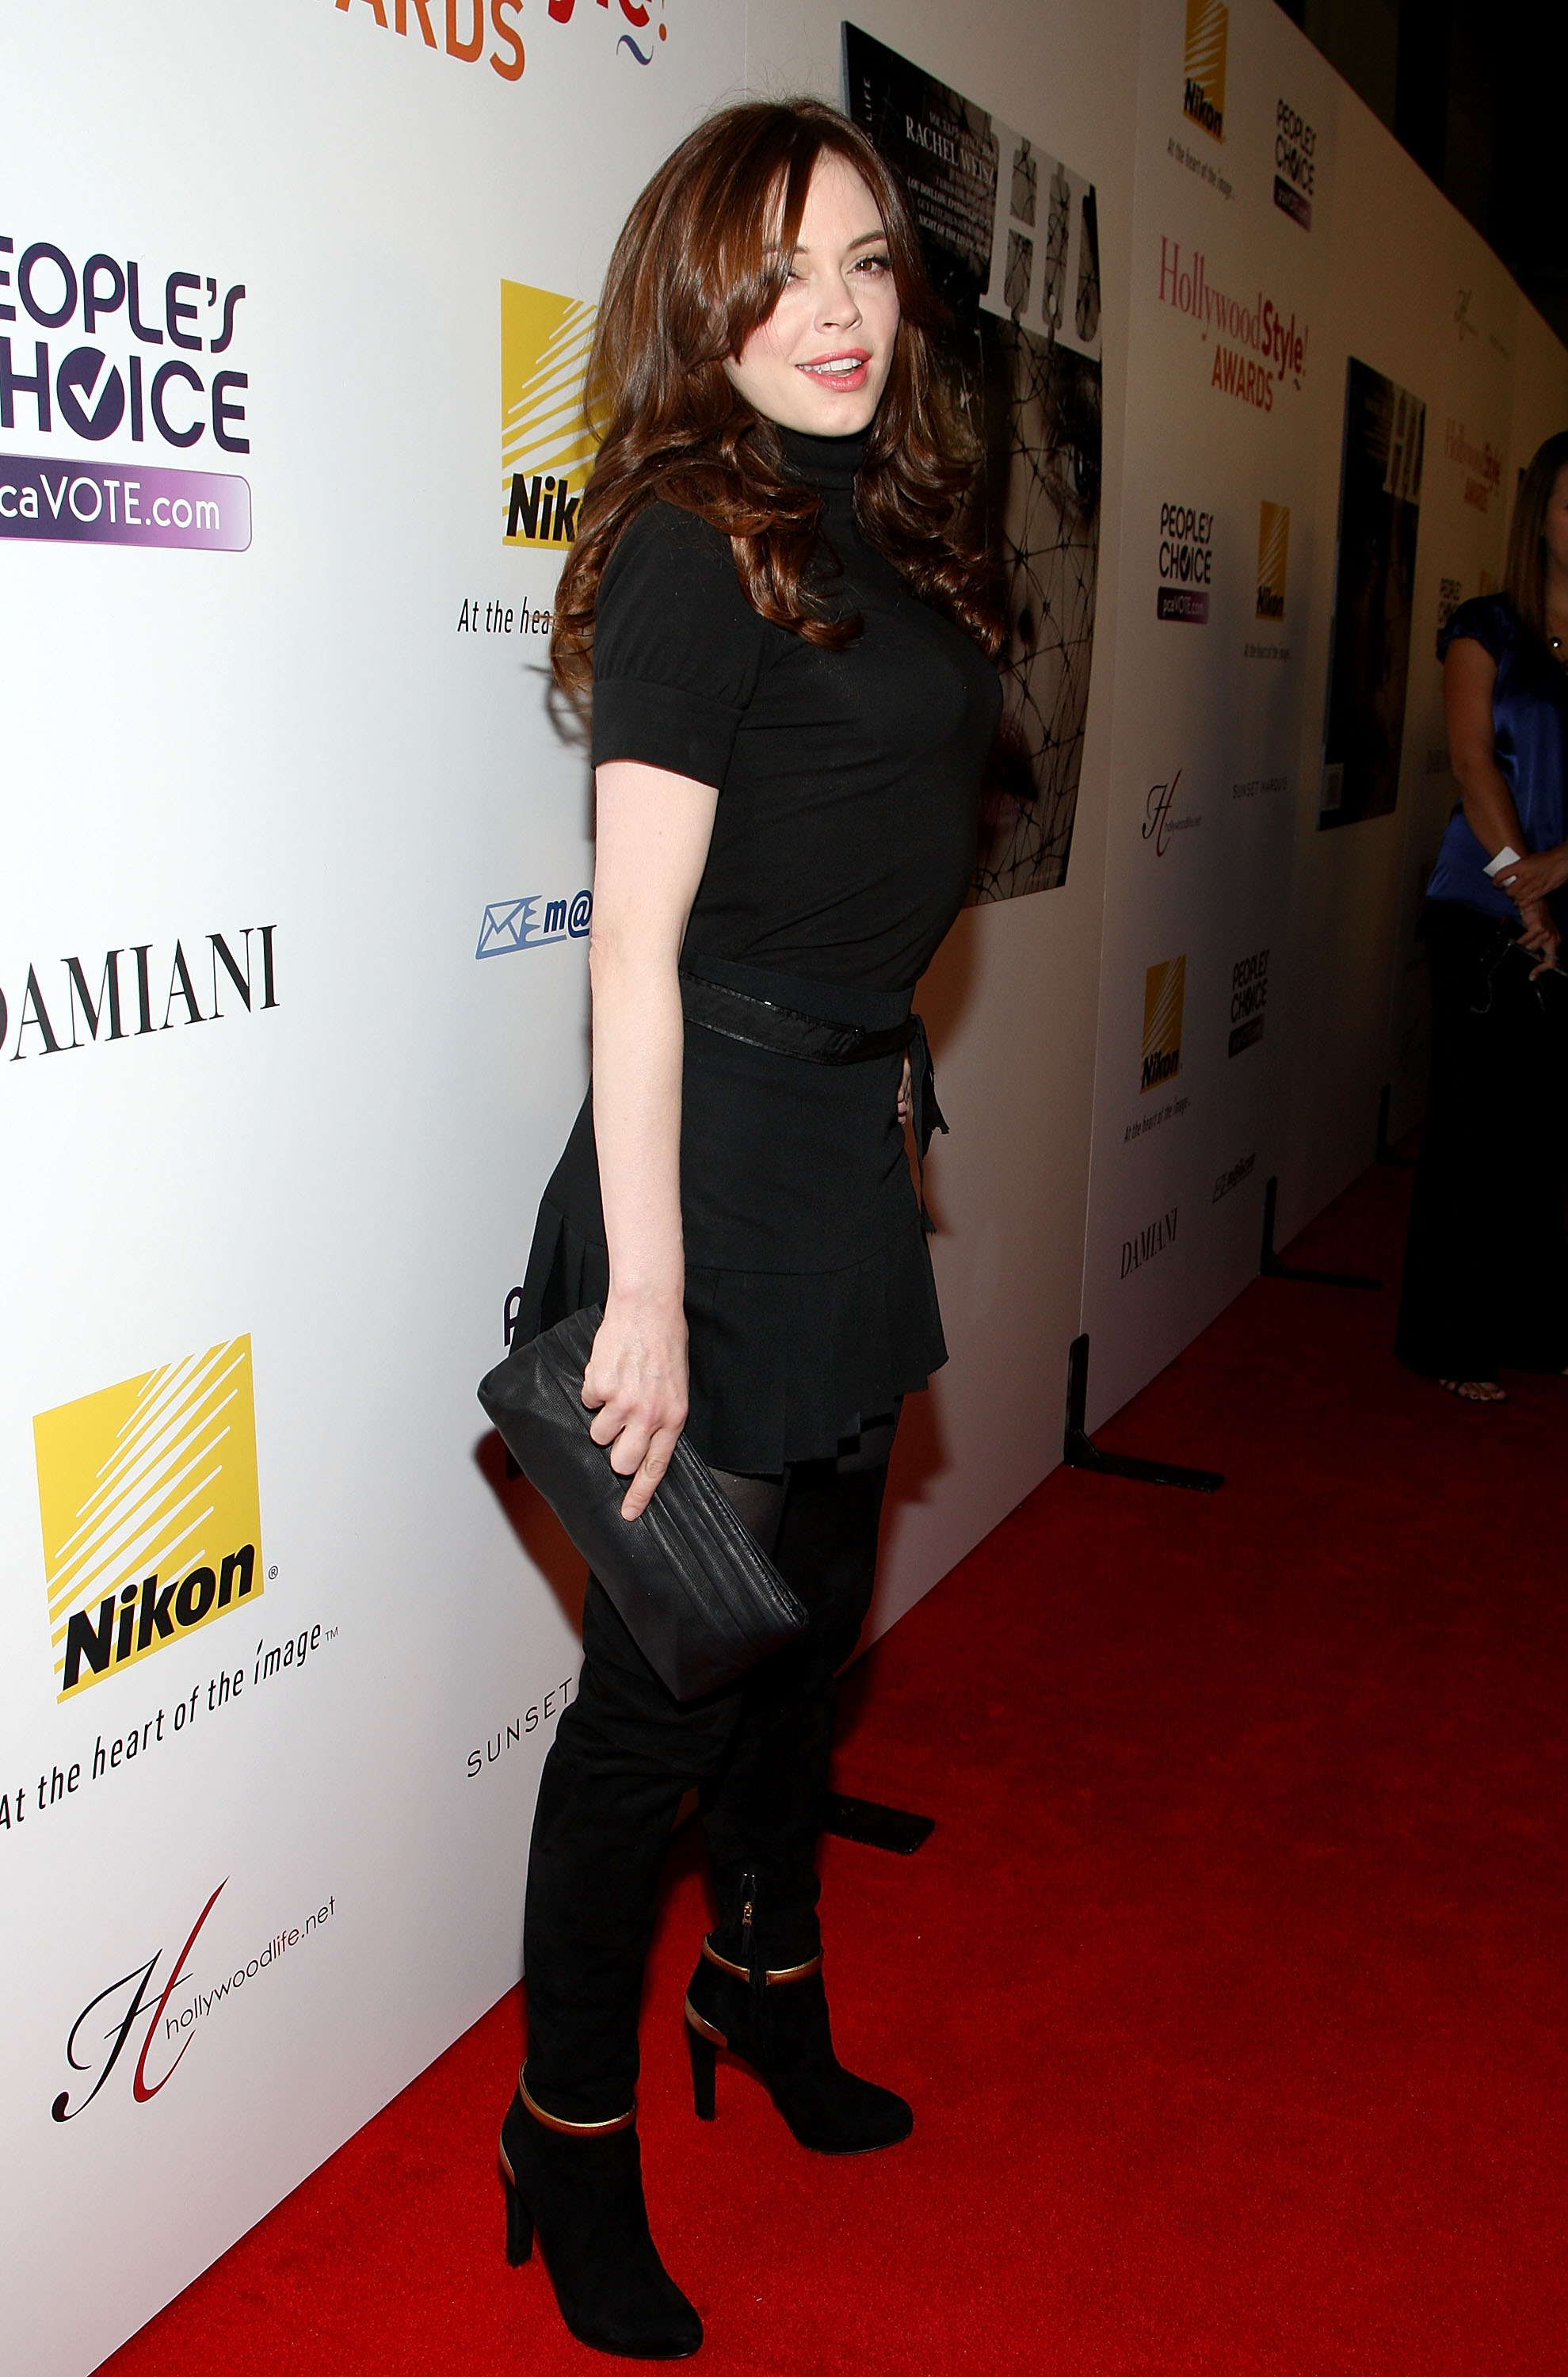 95211_Celebutopia-Rose_McGowan-Hollywood_Life2s_5th_annual_Hollywood_Style_Awards-02_122_565lo.jpg